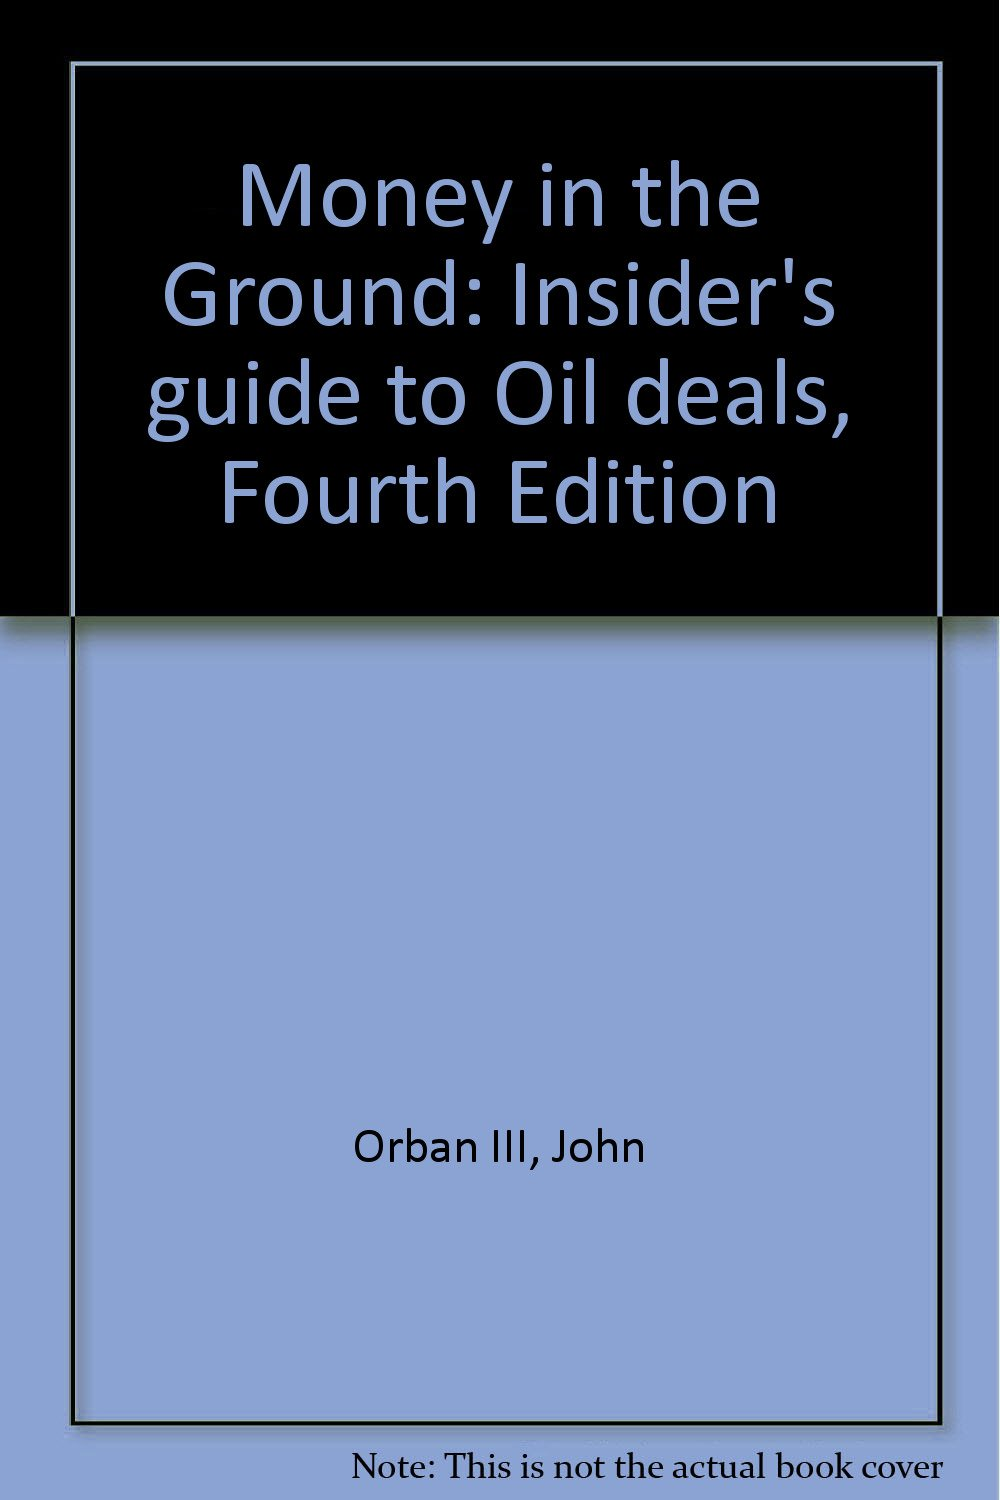 Money in the Ground: Insider's guide to Oil deals, Fourth Edition pdf